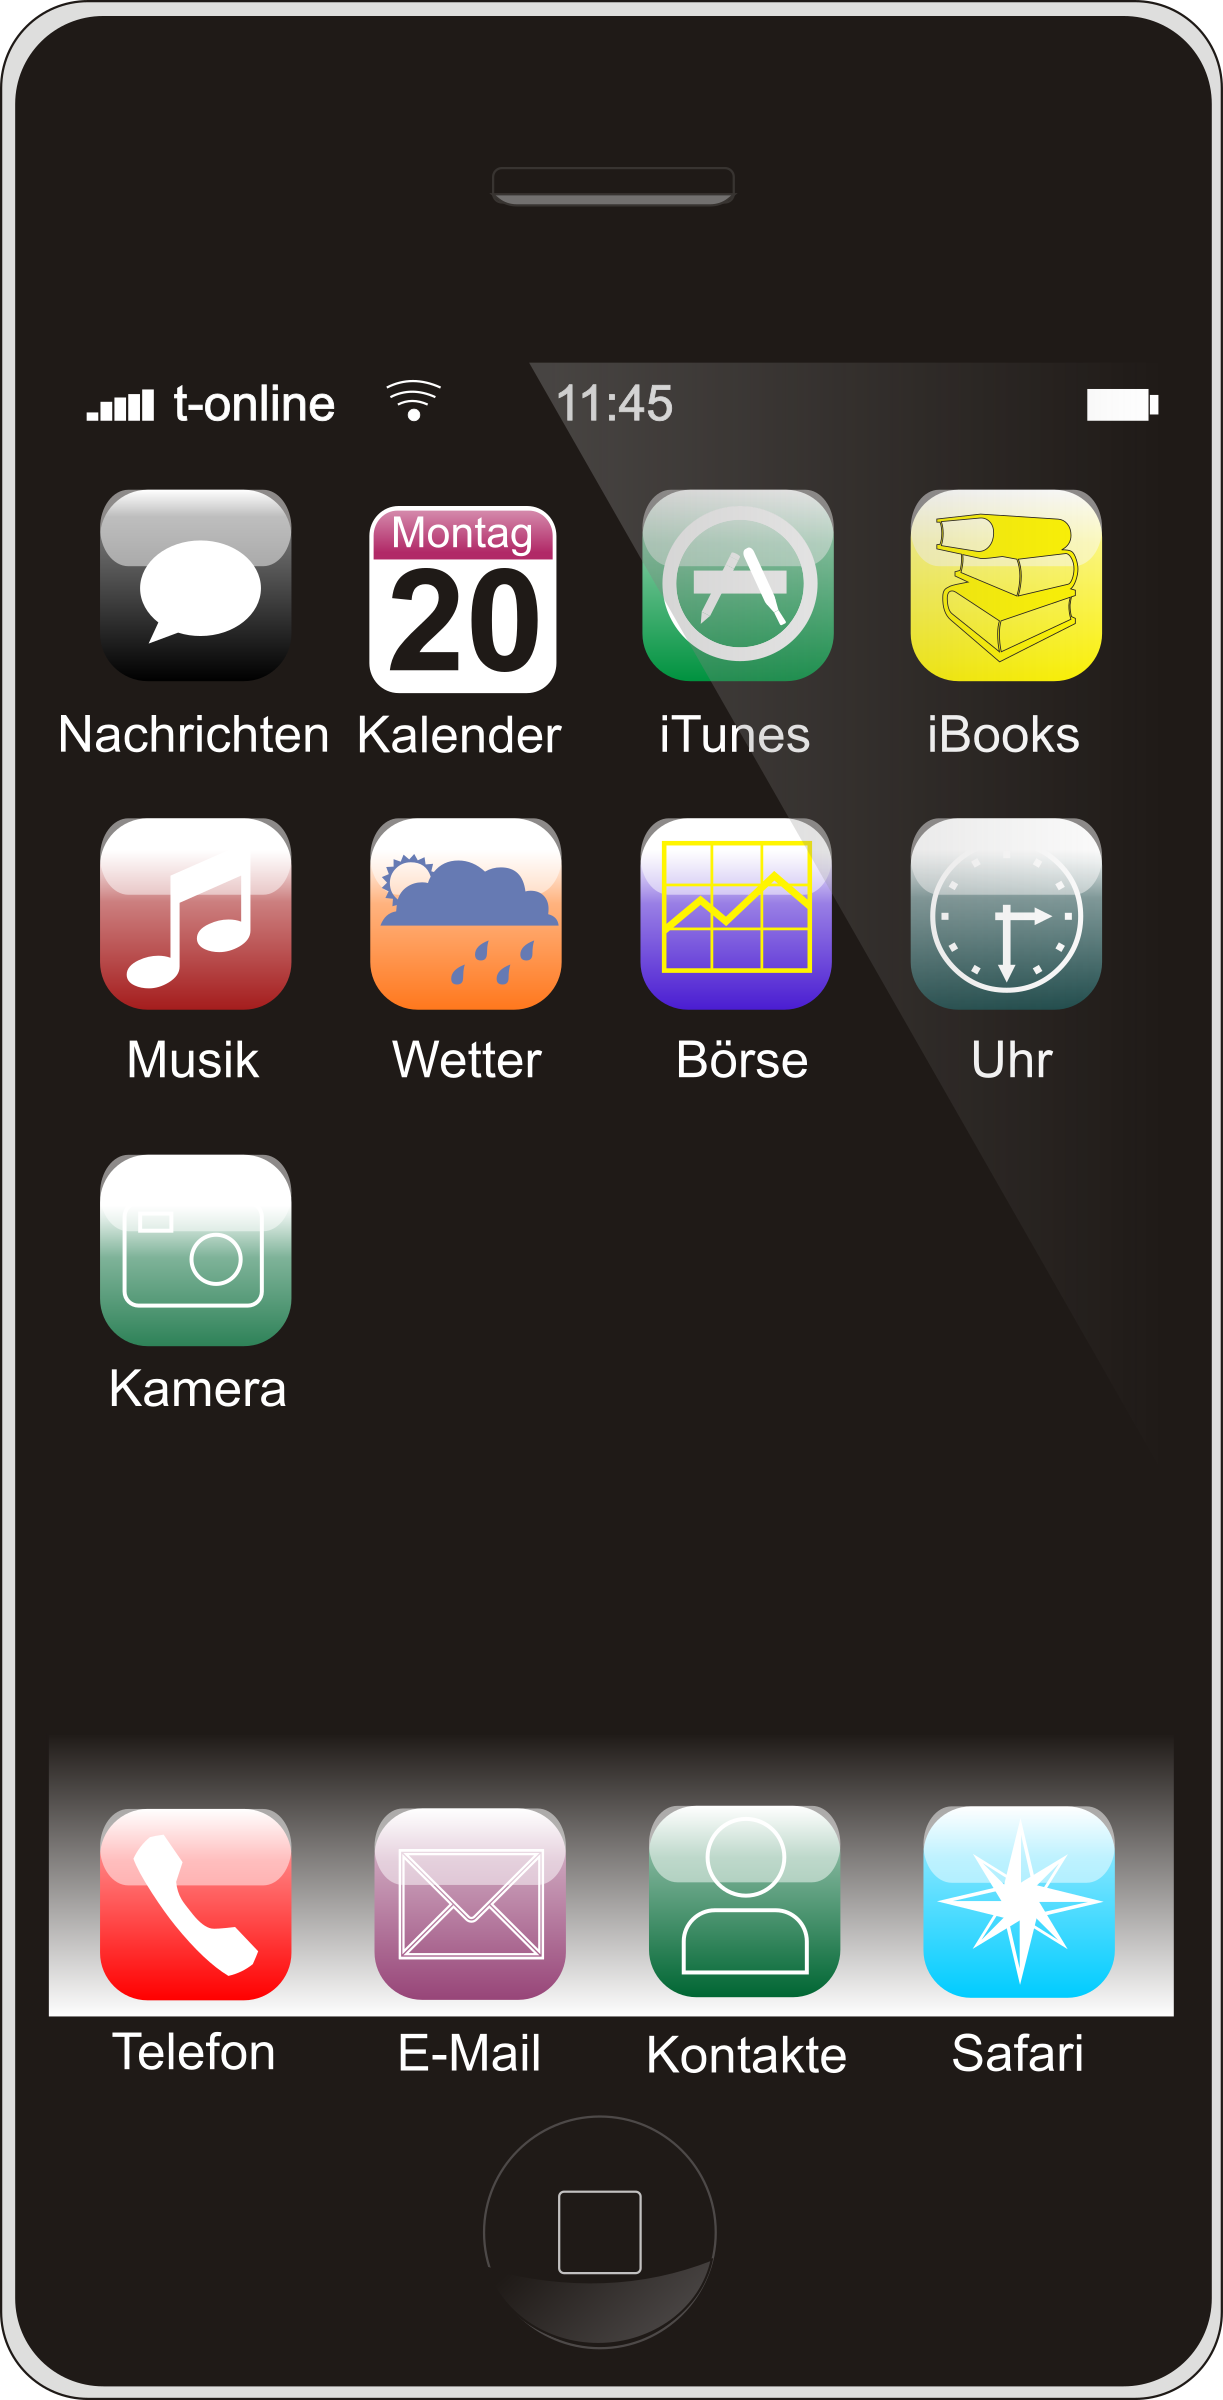 1223 x 2400 png 257kB, Clipart - Smartphone (German Version)